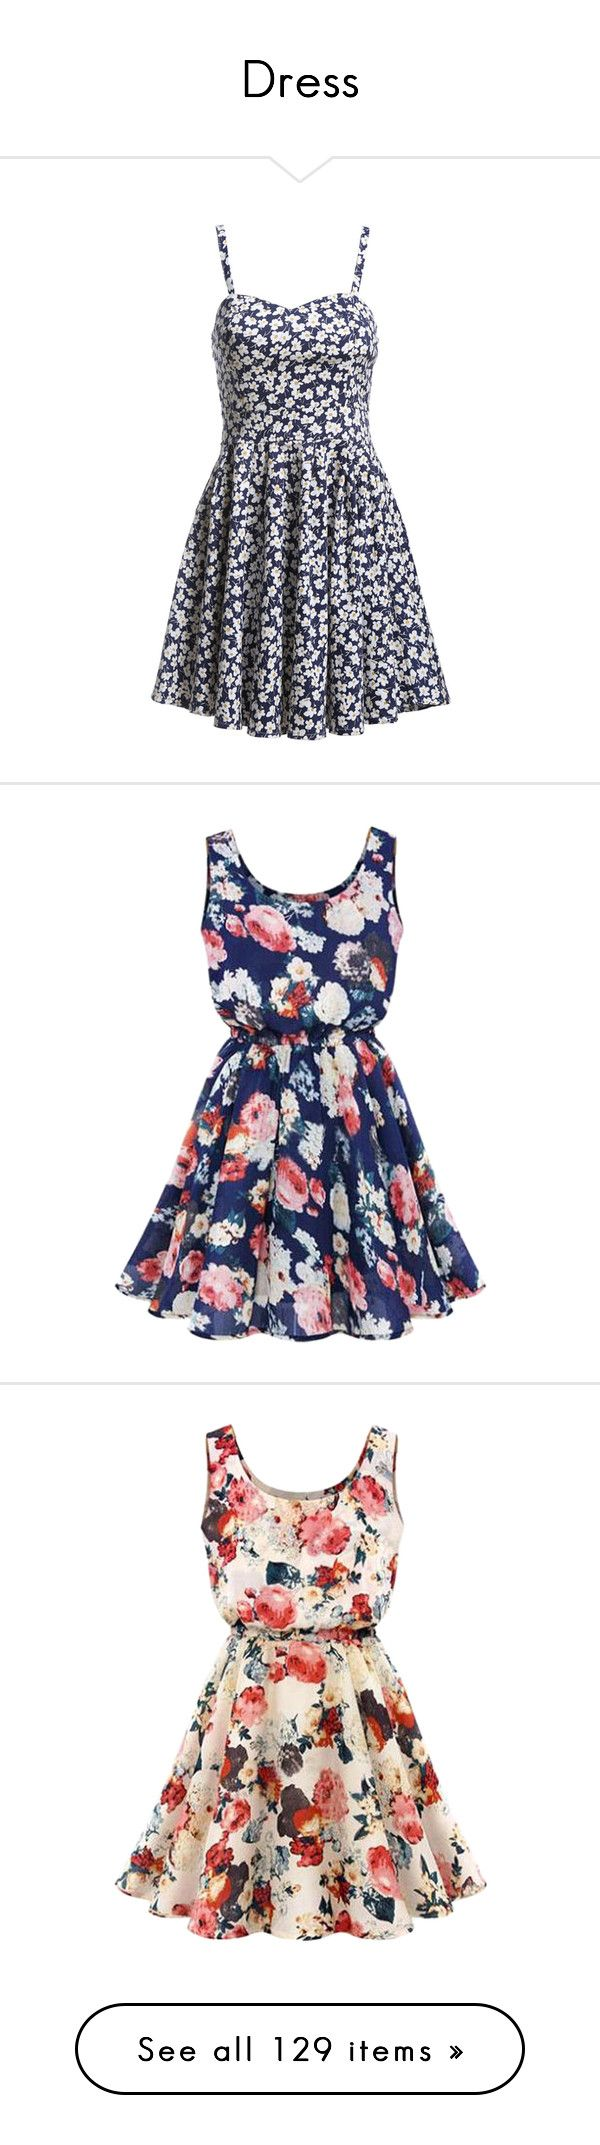 """""""Dress"""" by exoo ❤ liked on Polyvore featuring dresses, vestidos, blue, pleated dress, print shift dress, short blue dresses, floral dress, sleeveless shift dress, robe and short dresses"""